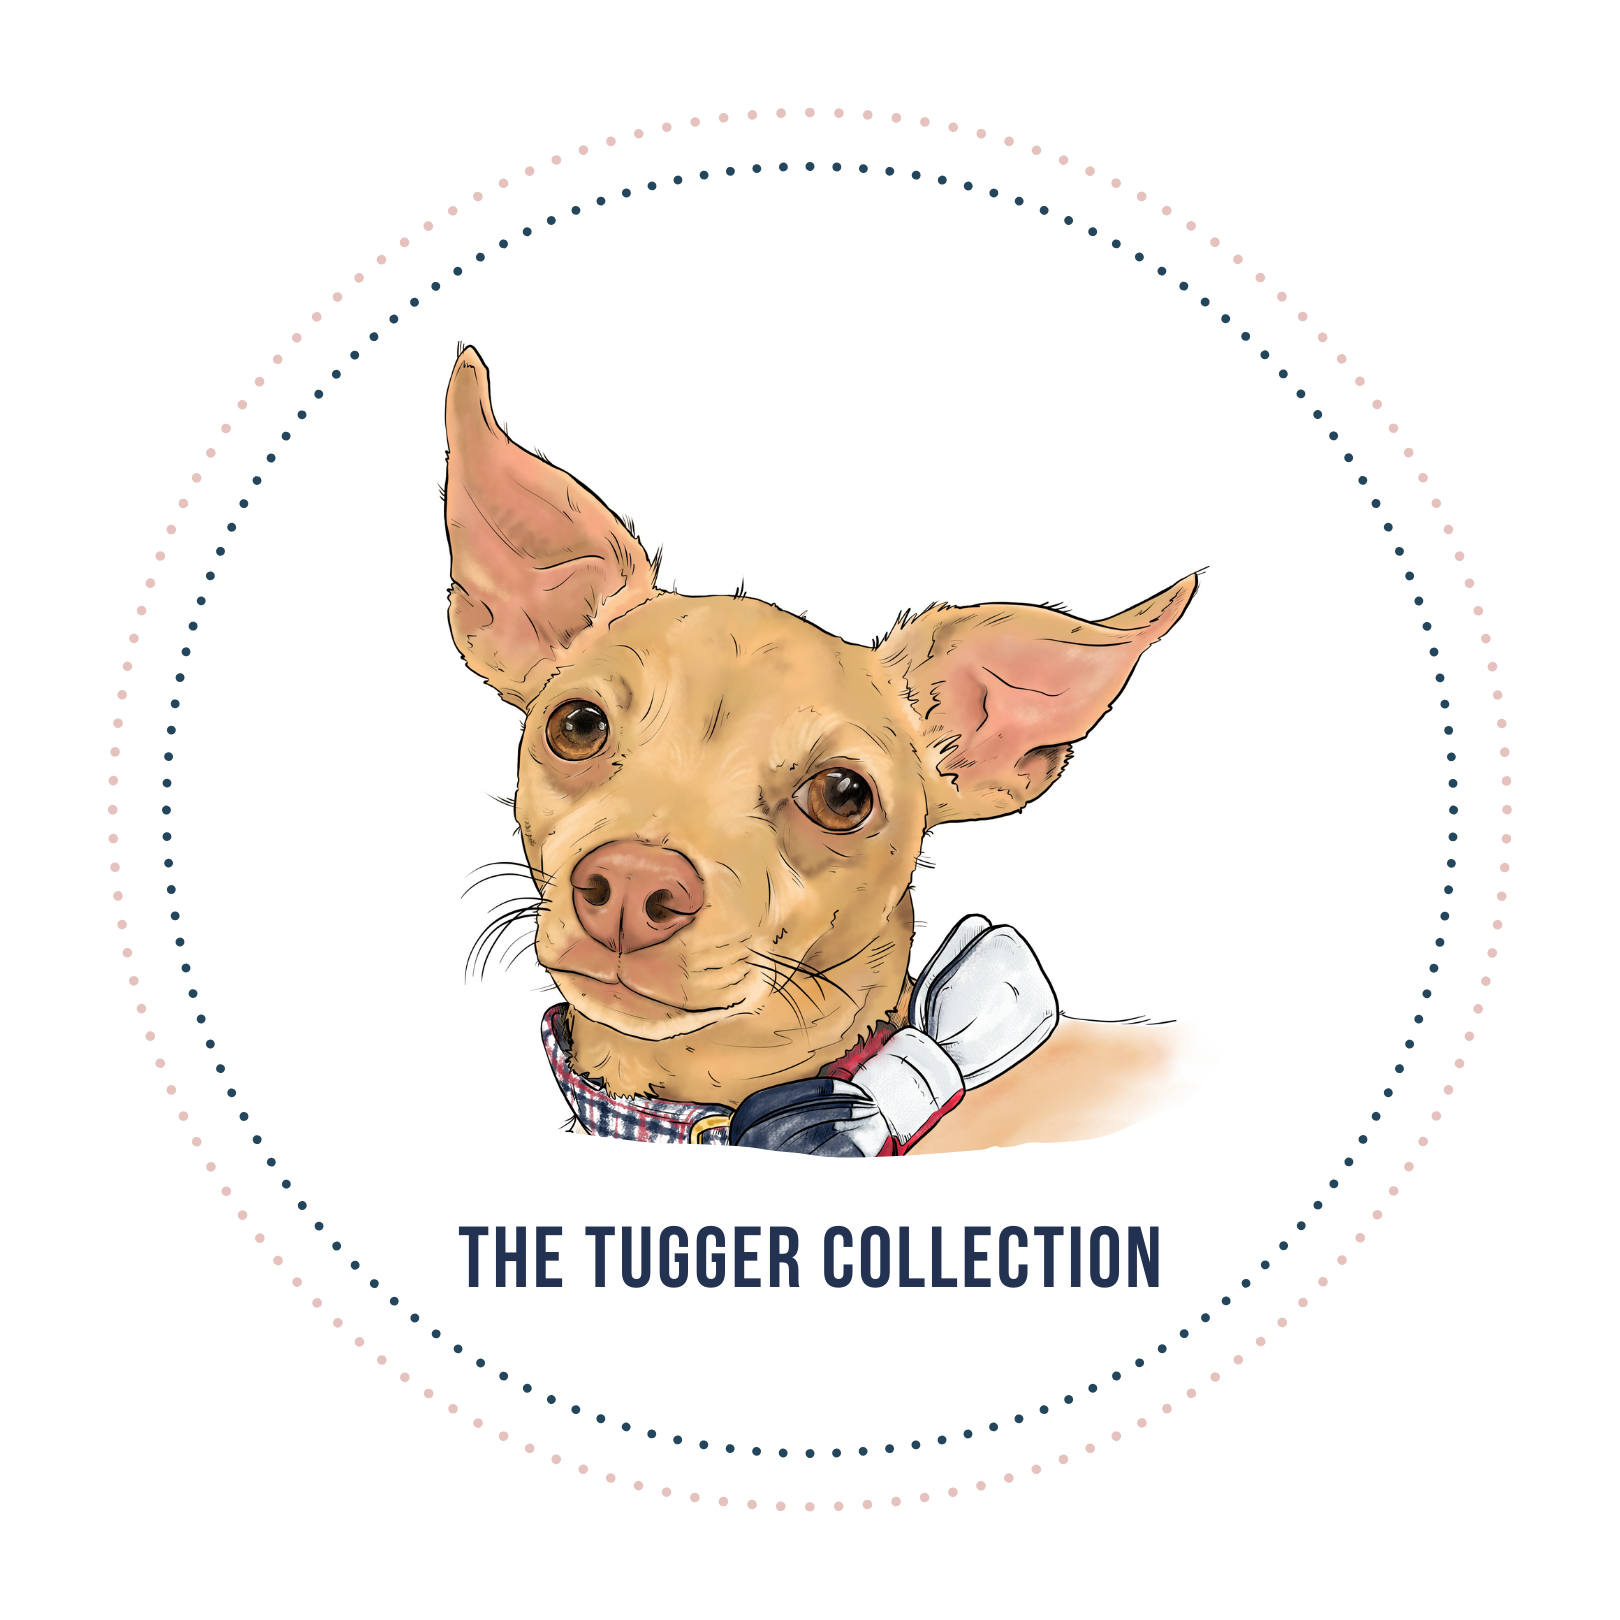 The Tugger Collection